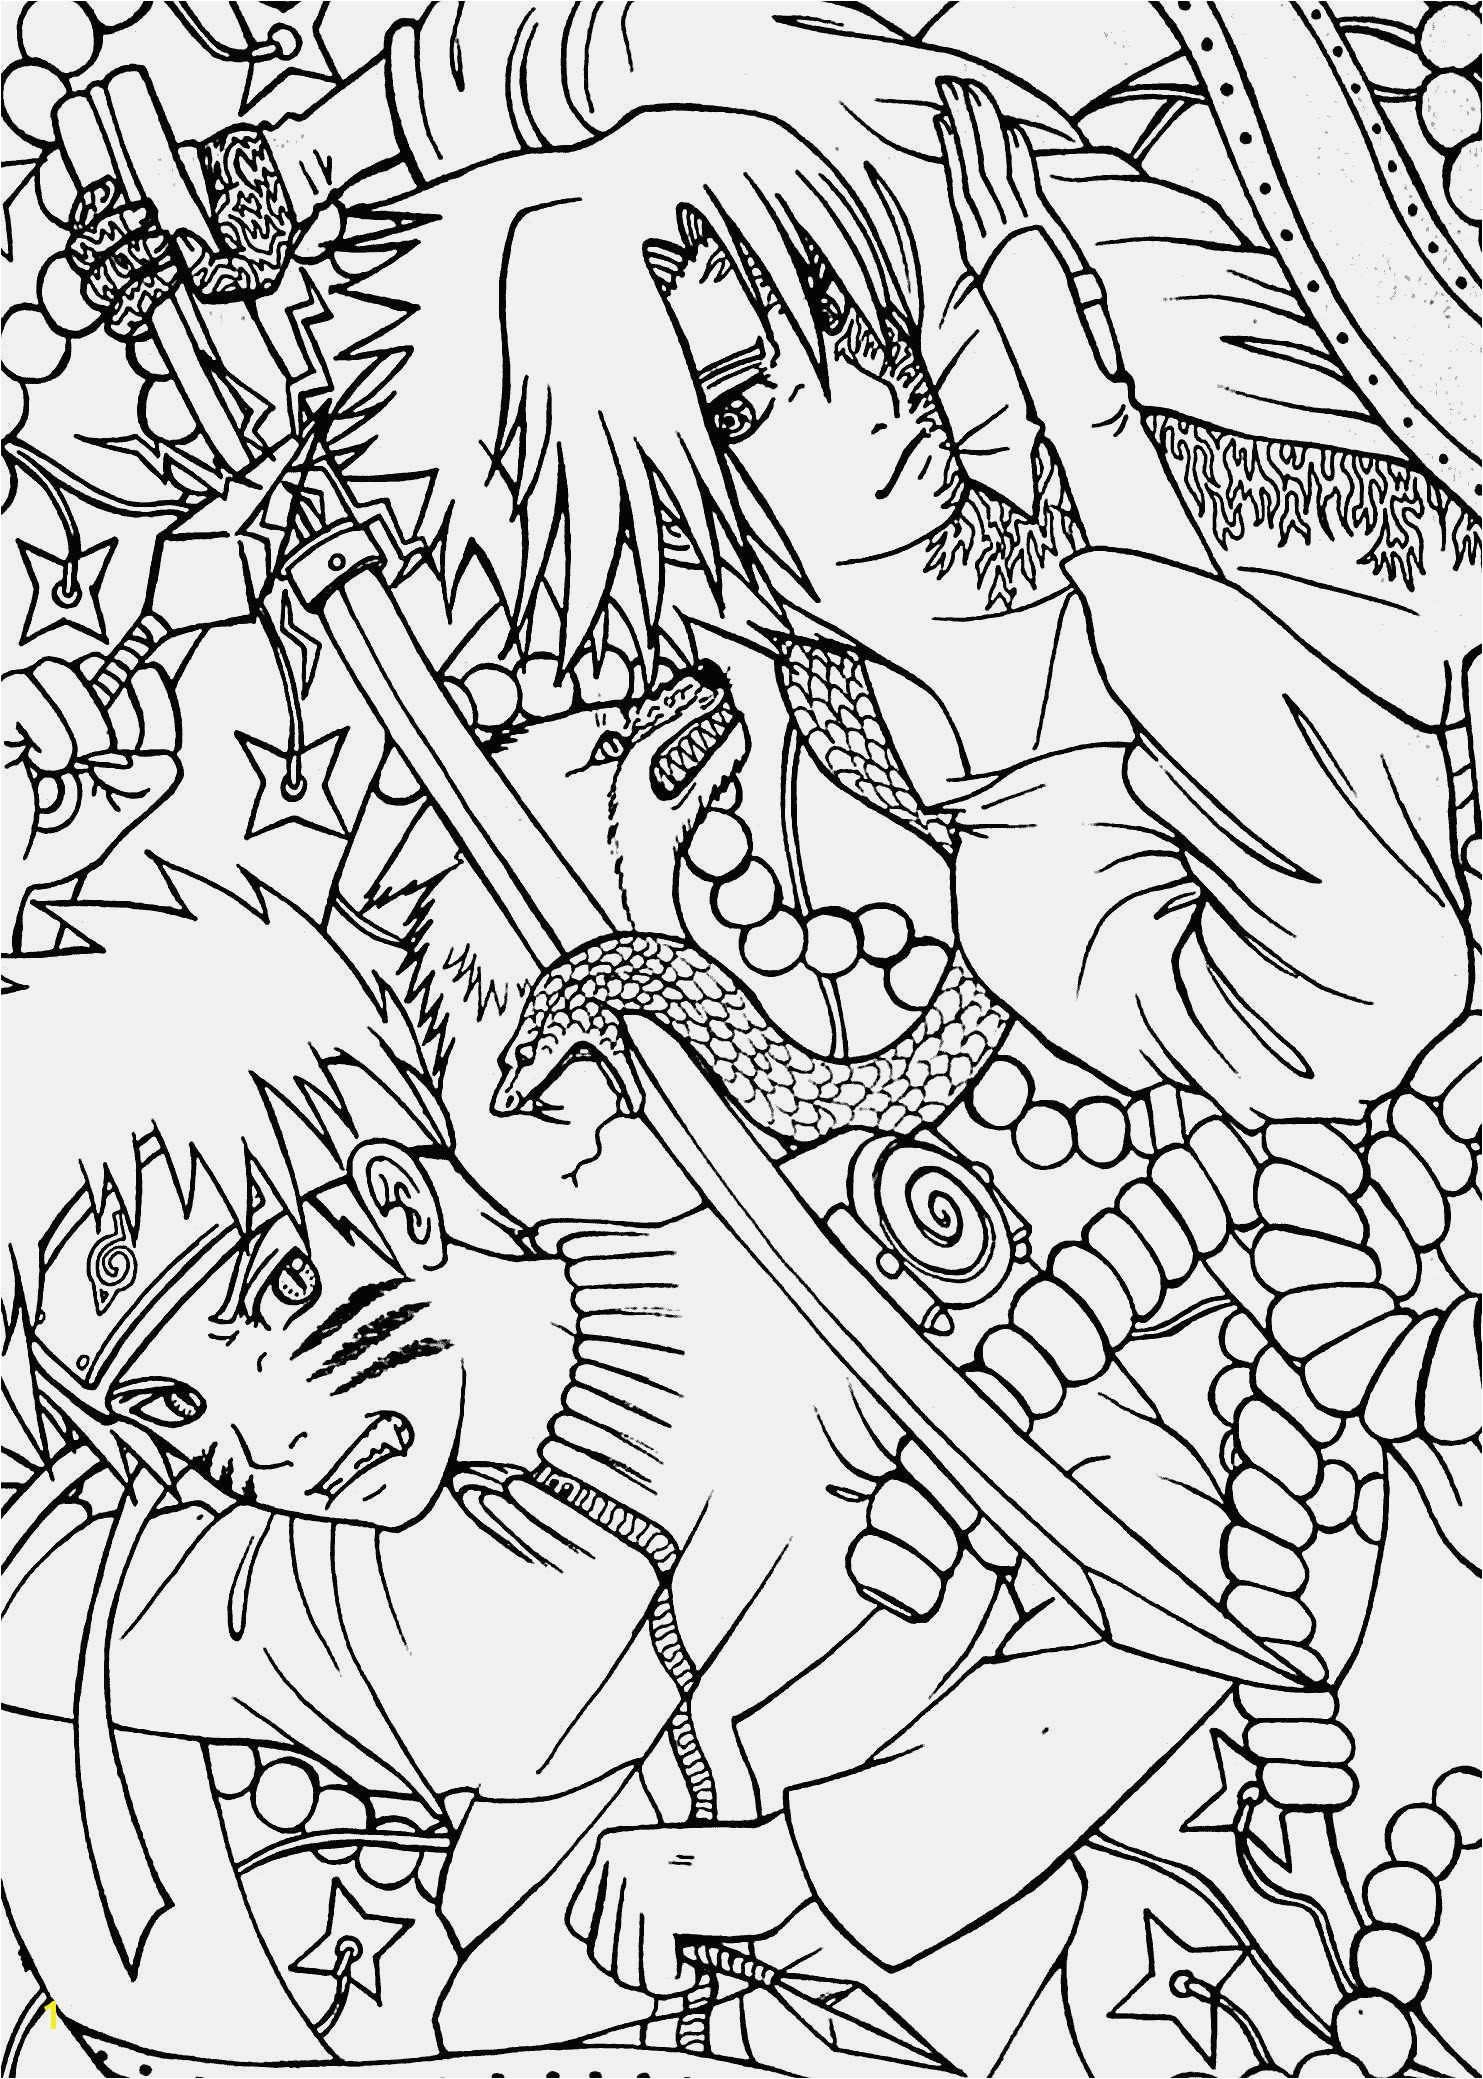 Batman Coloring Pages Printable Coloring Pages Harley Quinn Coloring Pages Awesome Witch Coloring Page Batman